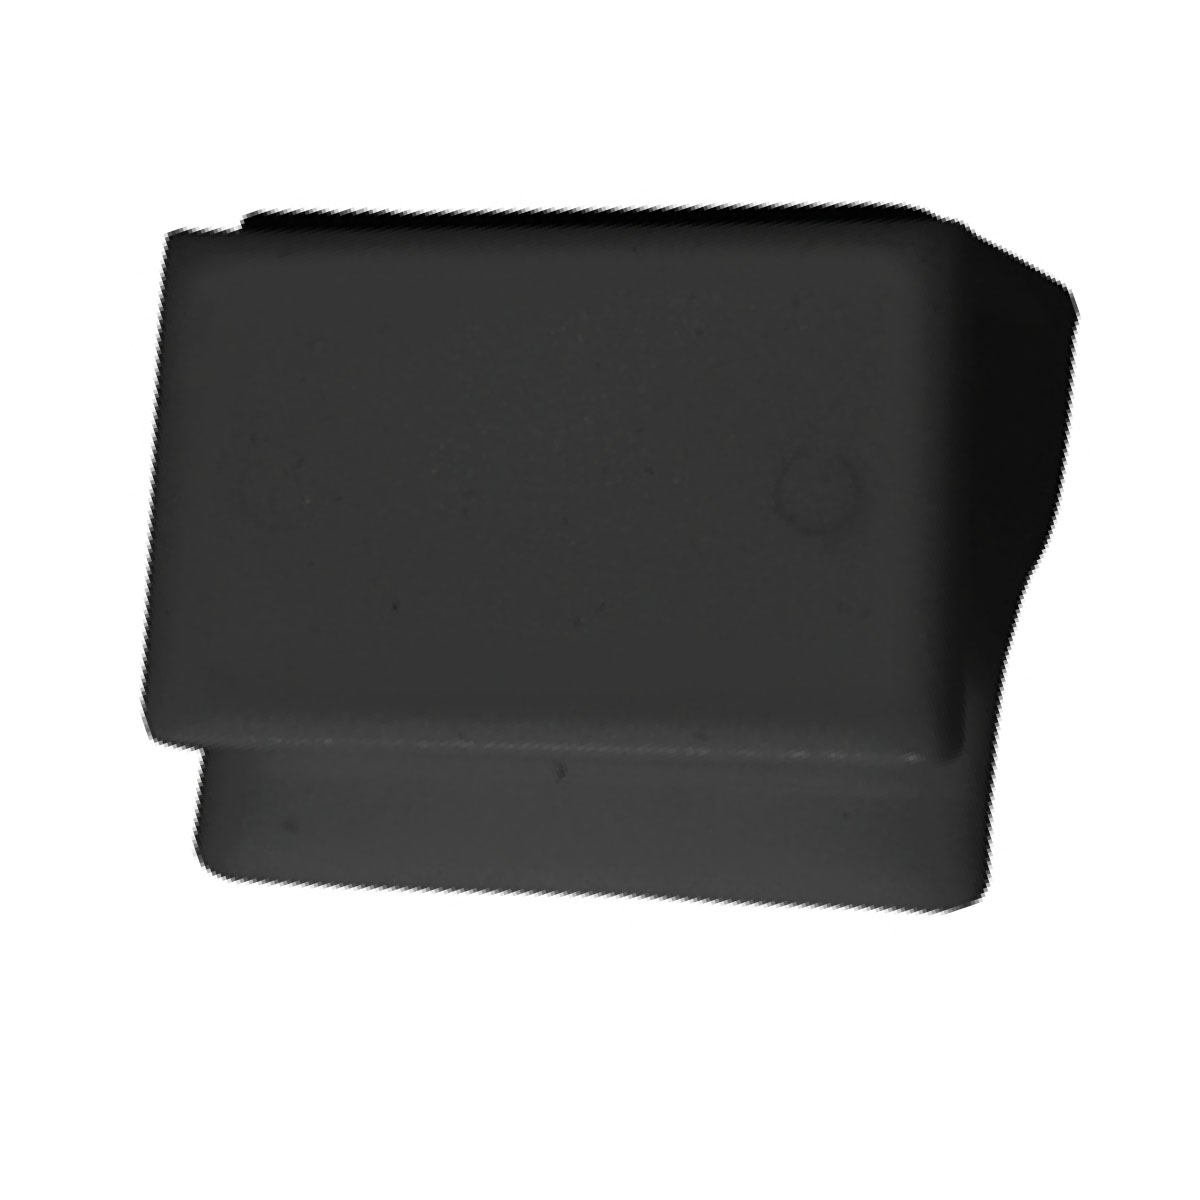 Black Privacy Cover with Screen Cleaner